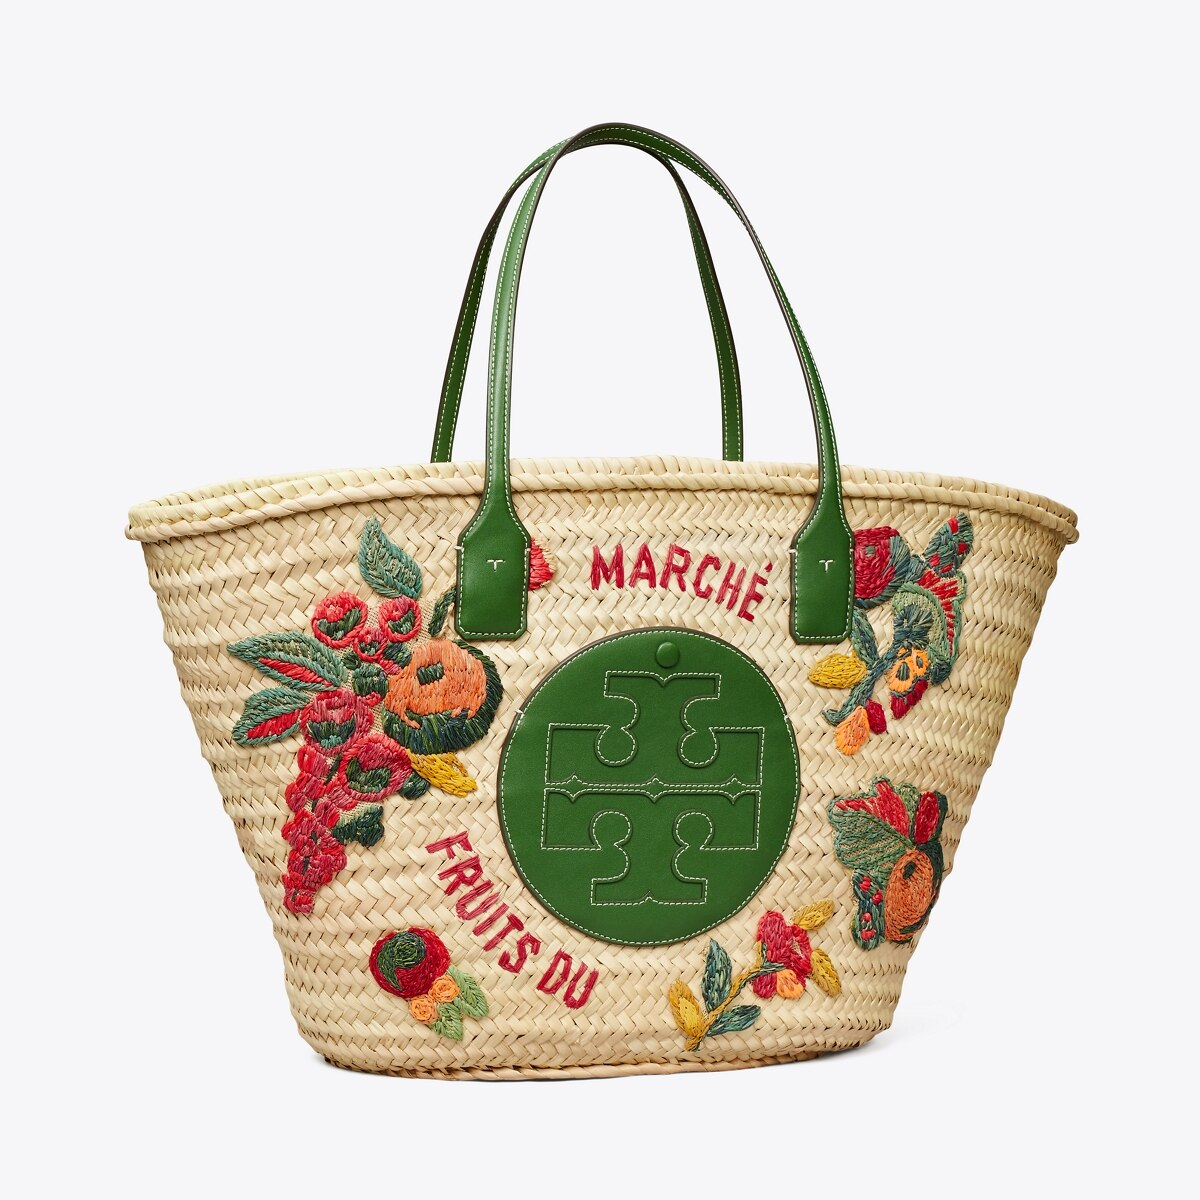 tory burch embroidered market basket